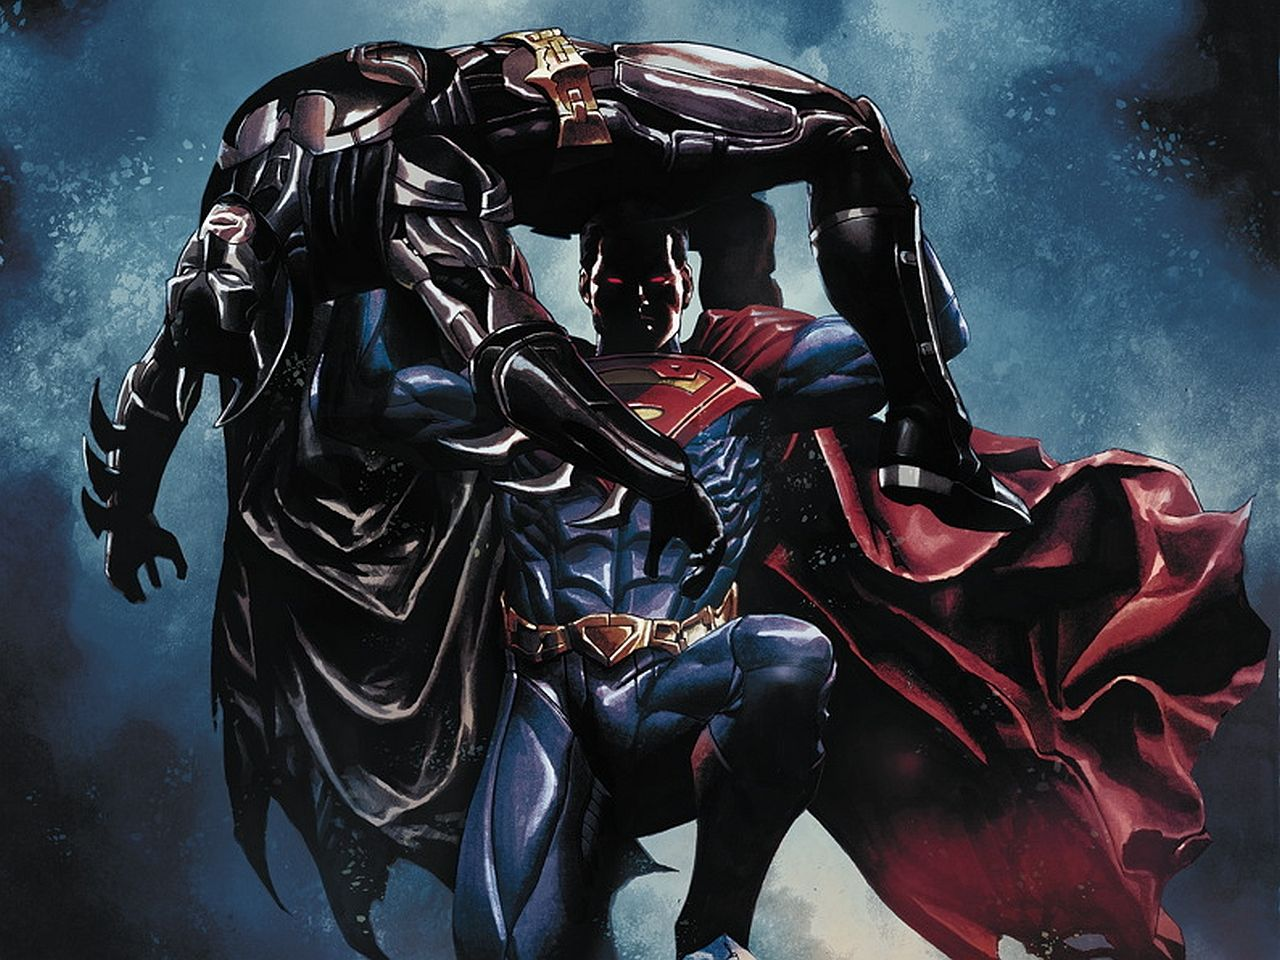 Comics Injustice Gods Among Us Superman Batman Wallpaper Injustice Superman Batman